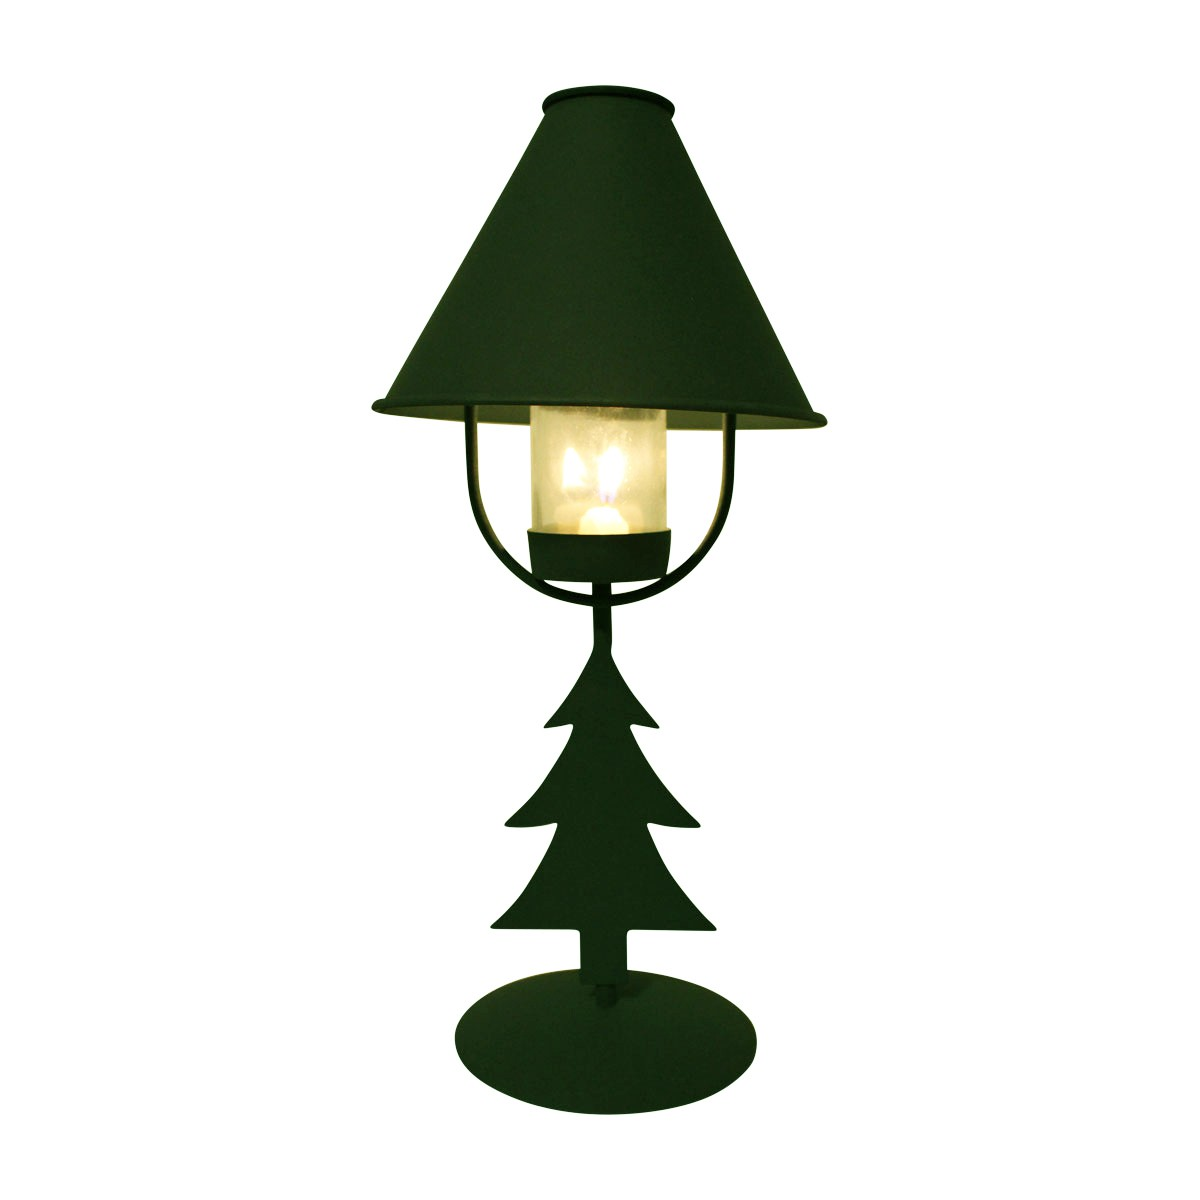 2 Christmas Tree Table Lamp Antique Green Metal Lamp Table Lights Lamps